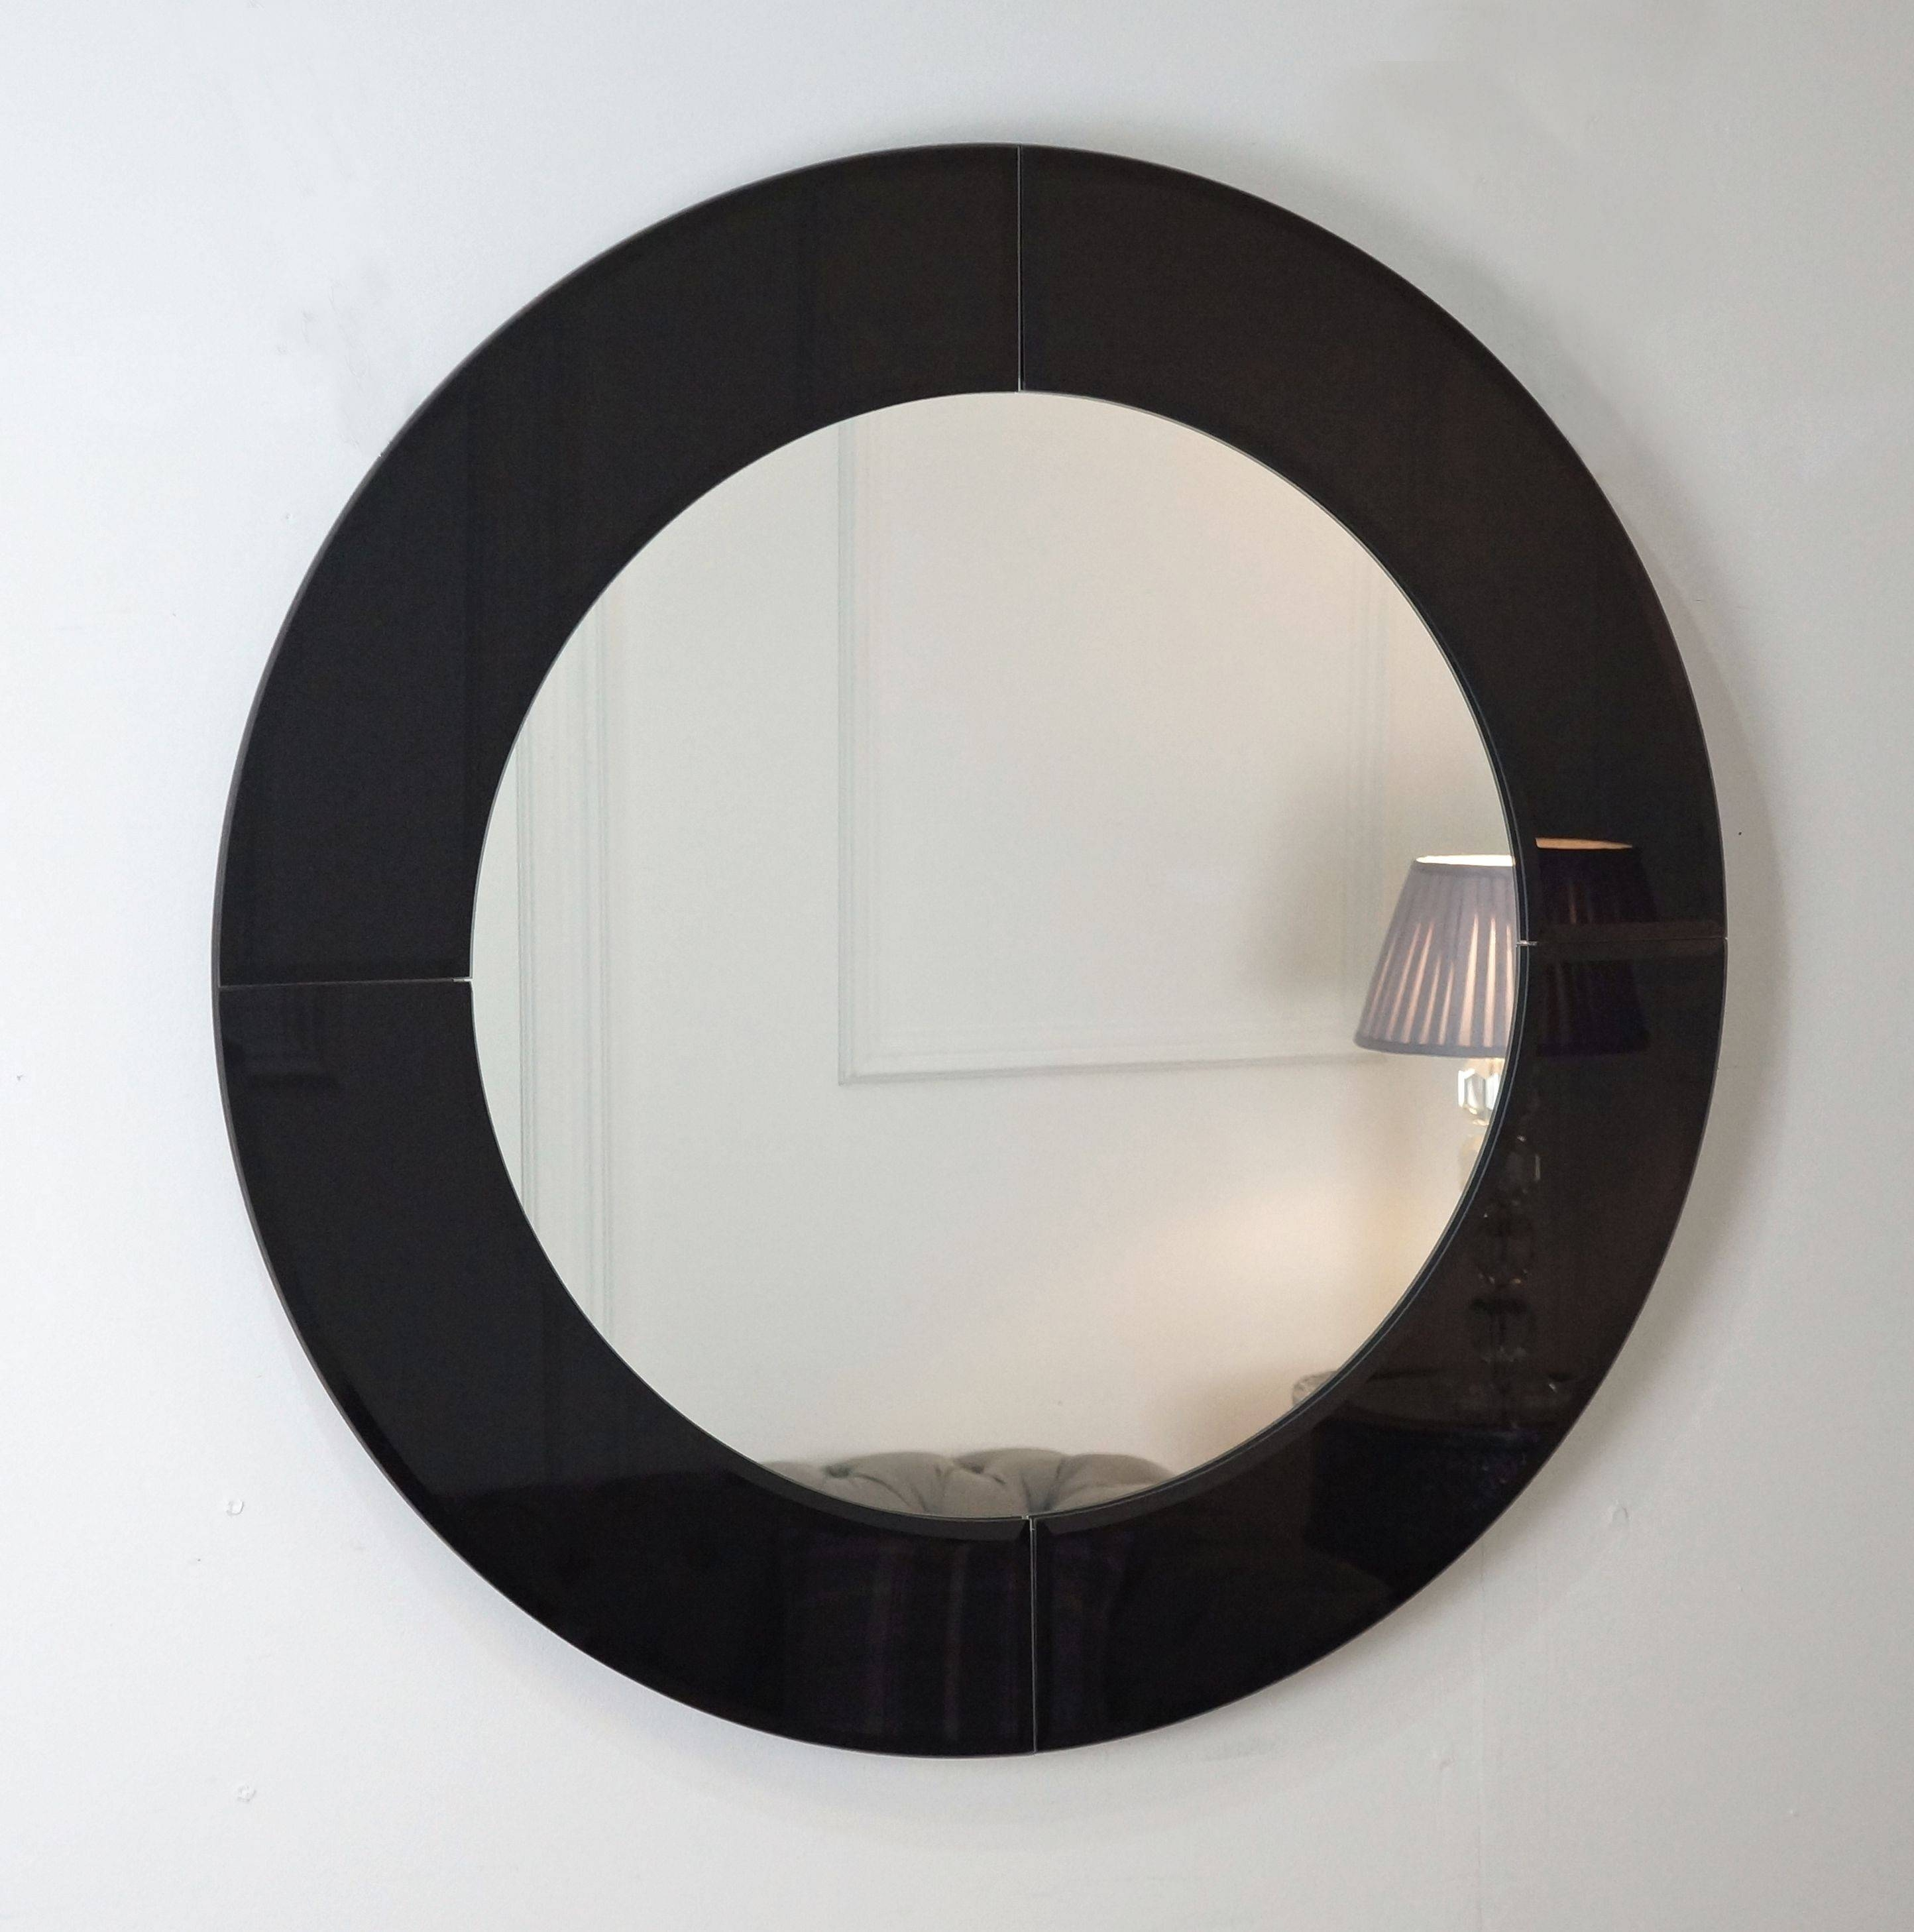 The Best Value Round Art Deco Mirrors Online with Round Art Deco Mirrors (Image 15 of 15)